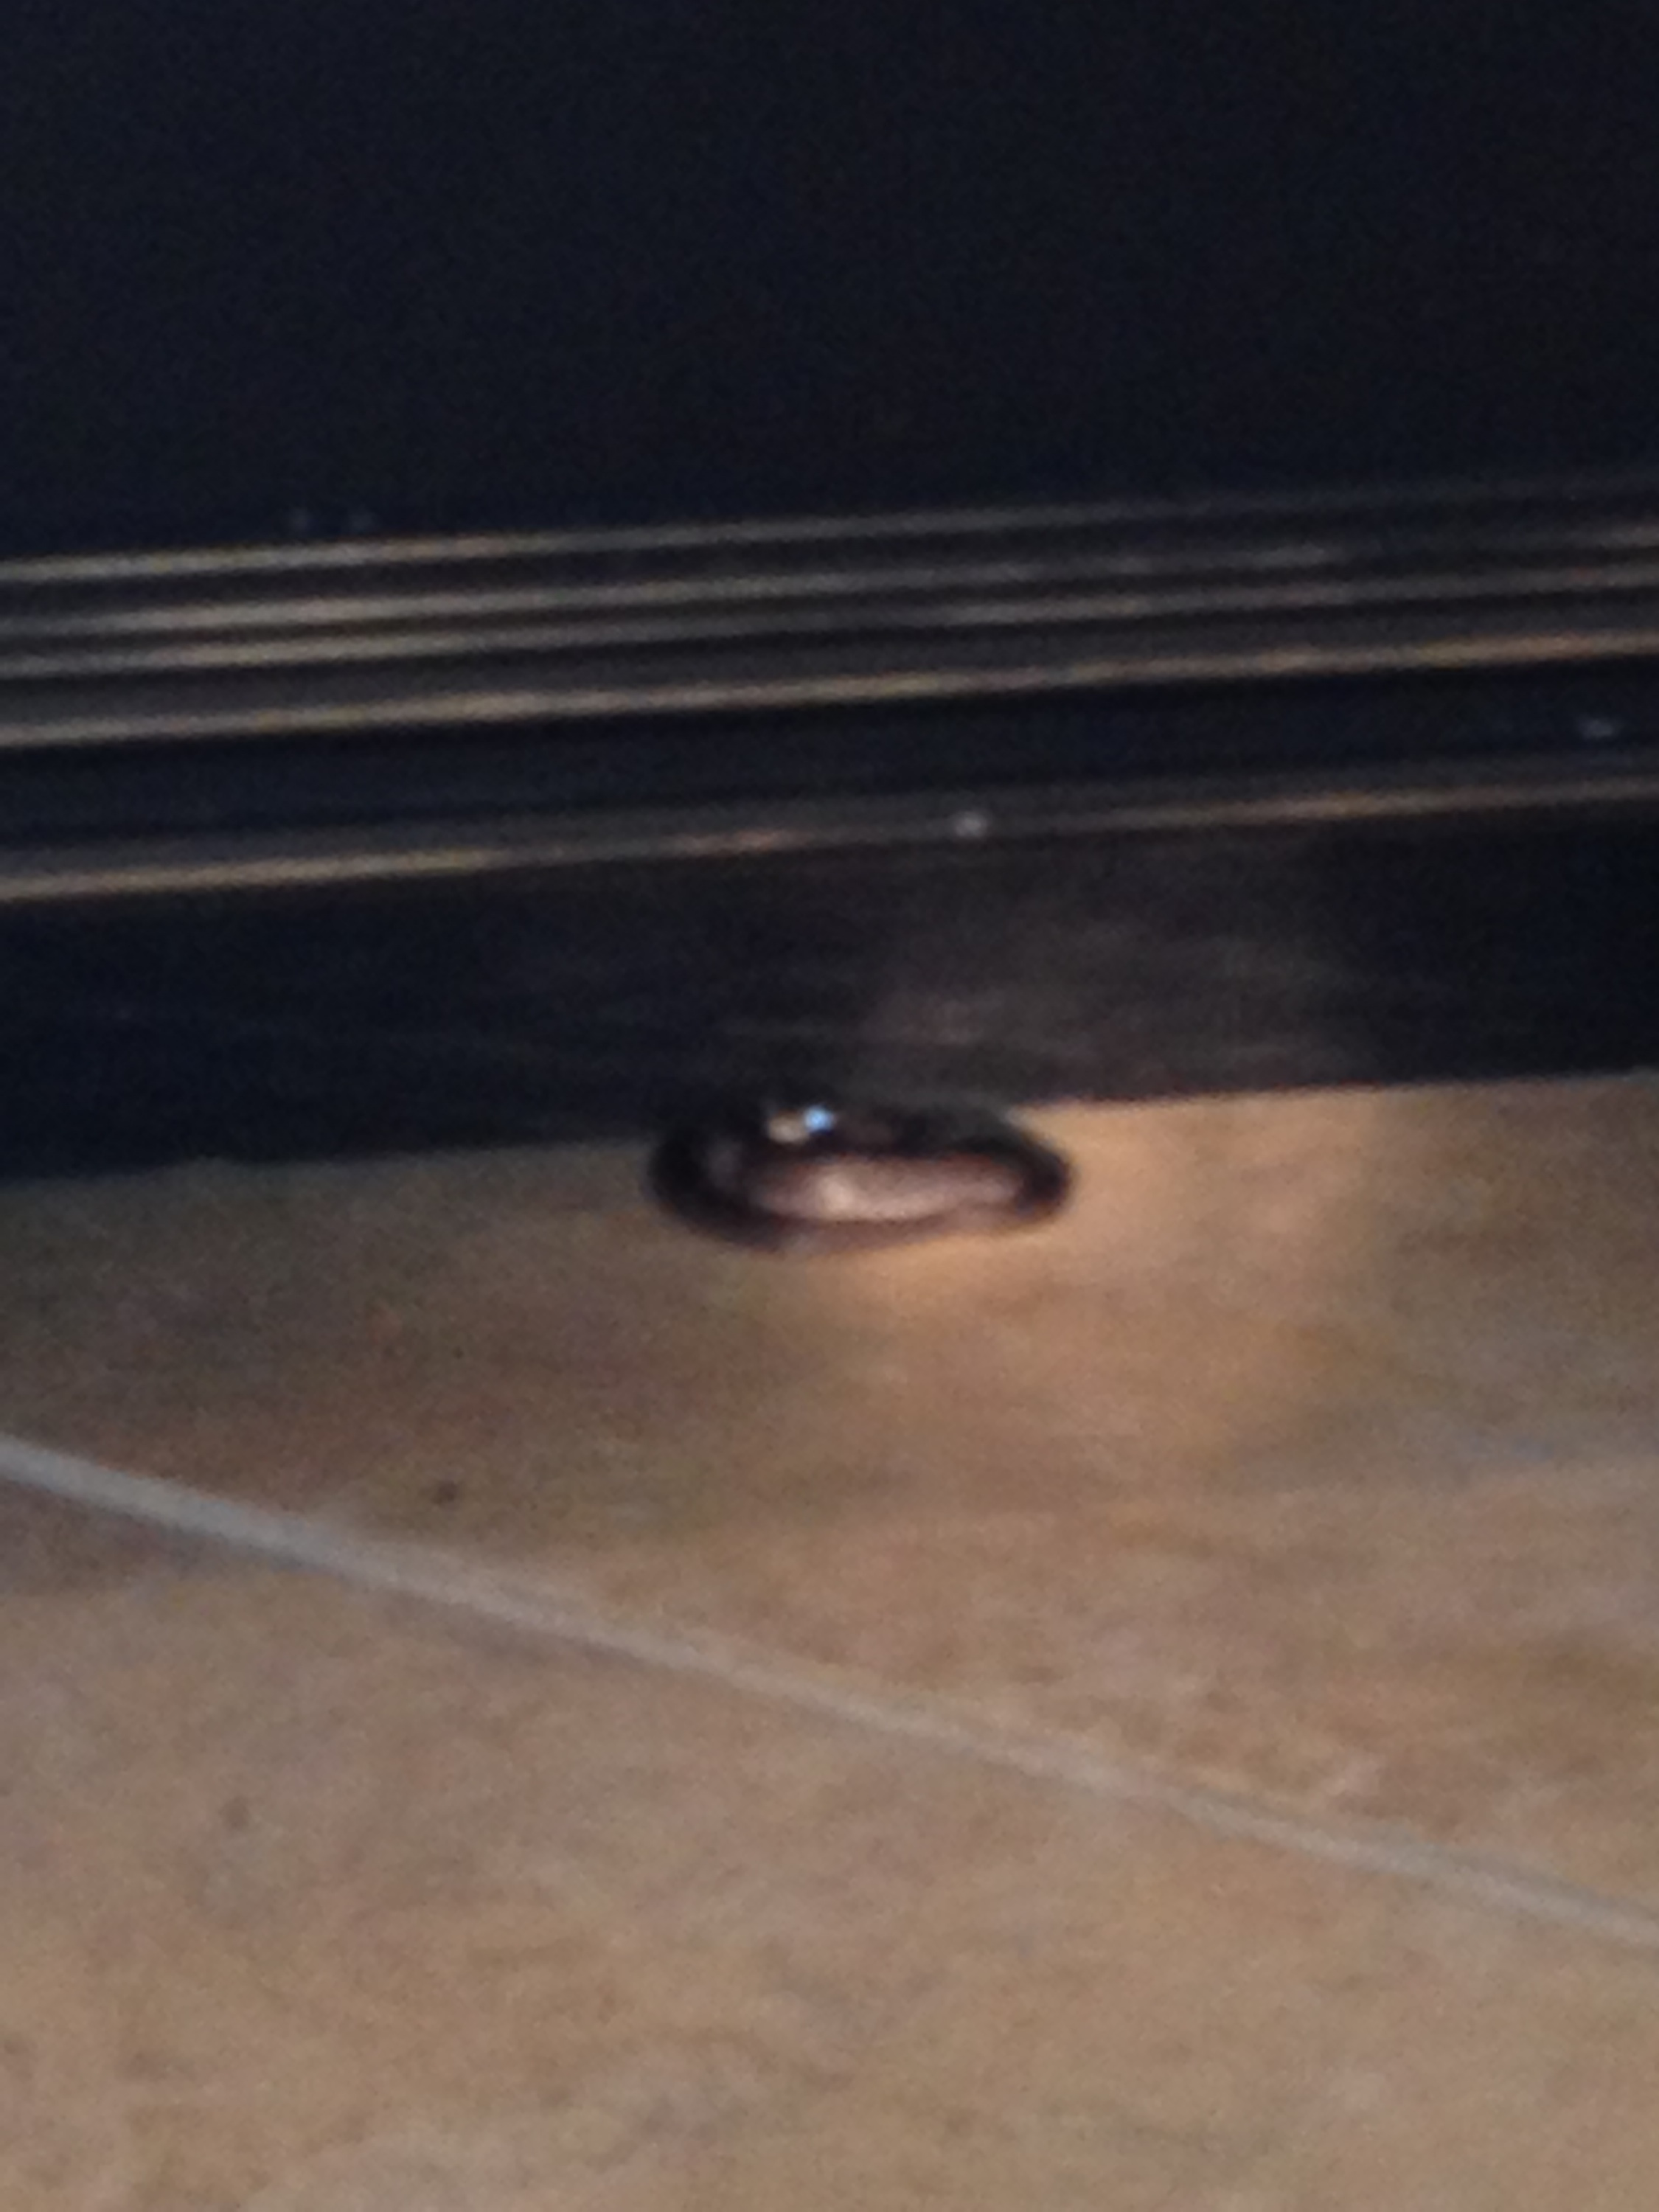 Here's the picture that my friend sent of the mystery snake in her house in Oviedo.  It was under an island in her kitchen, so it was hard for her to take a good picture.